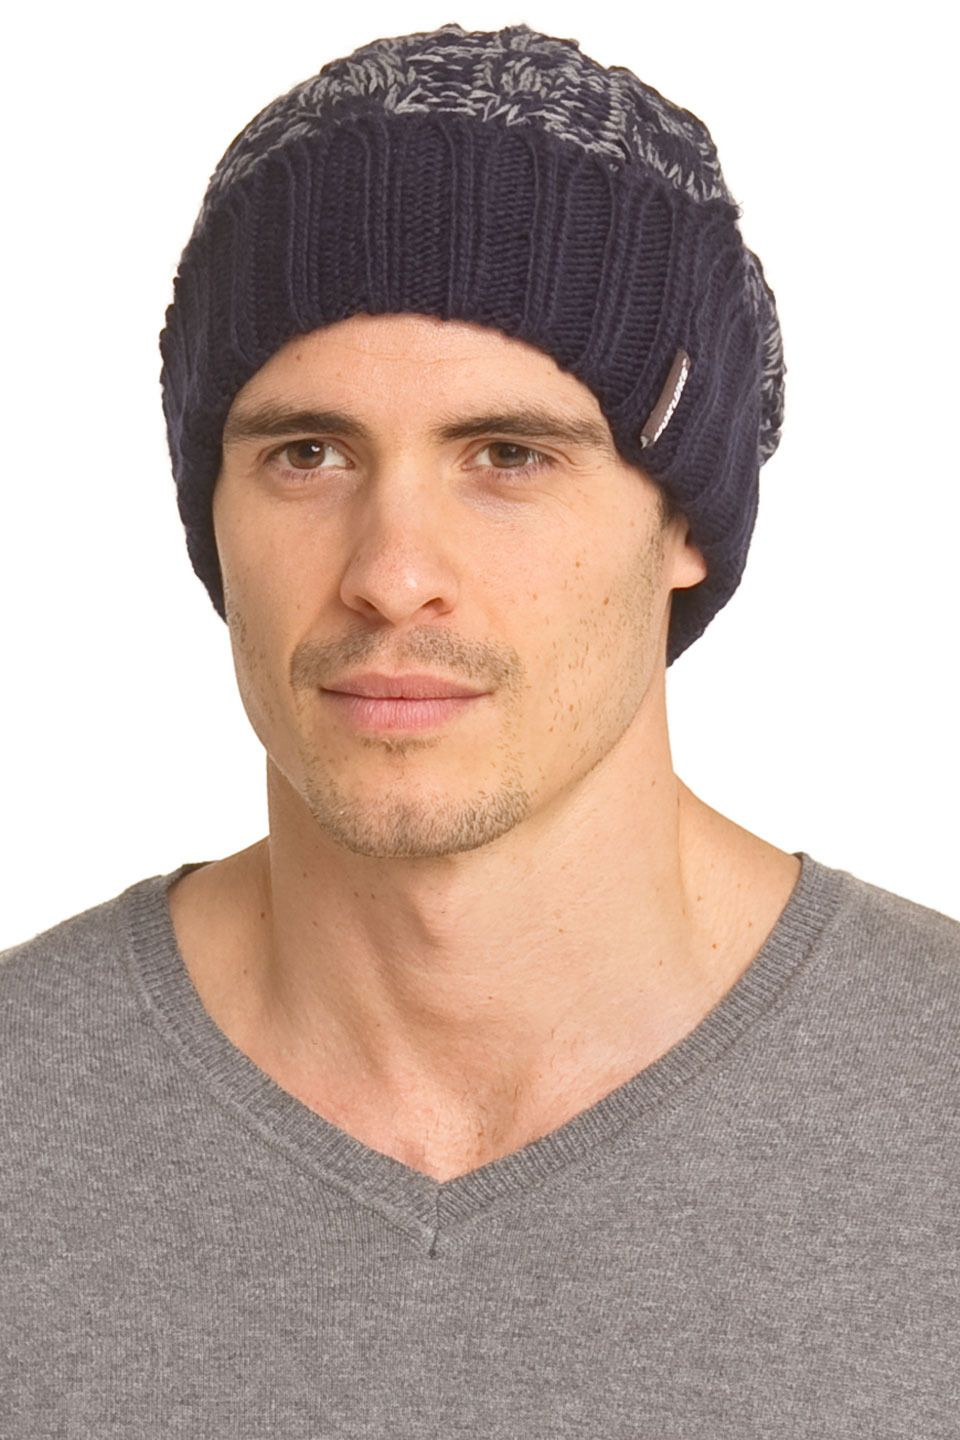 muk luks Men's Two-Tone Cable Cuff Cap in Galaxy and Cinder - Beyond the Rack